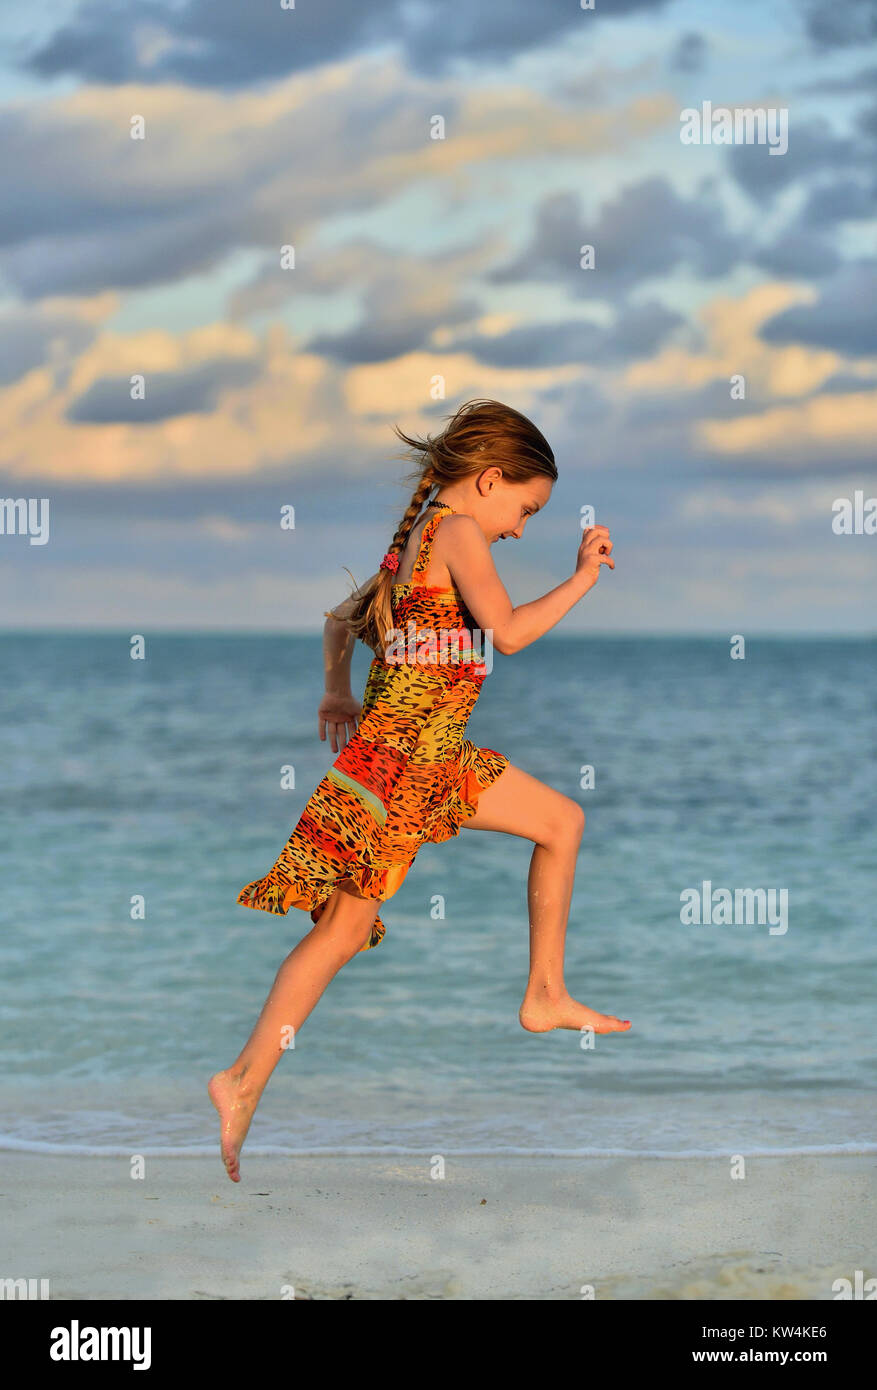 Cute Little Girl Running On Beach In Sunset Light Cuba